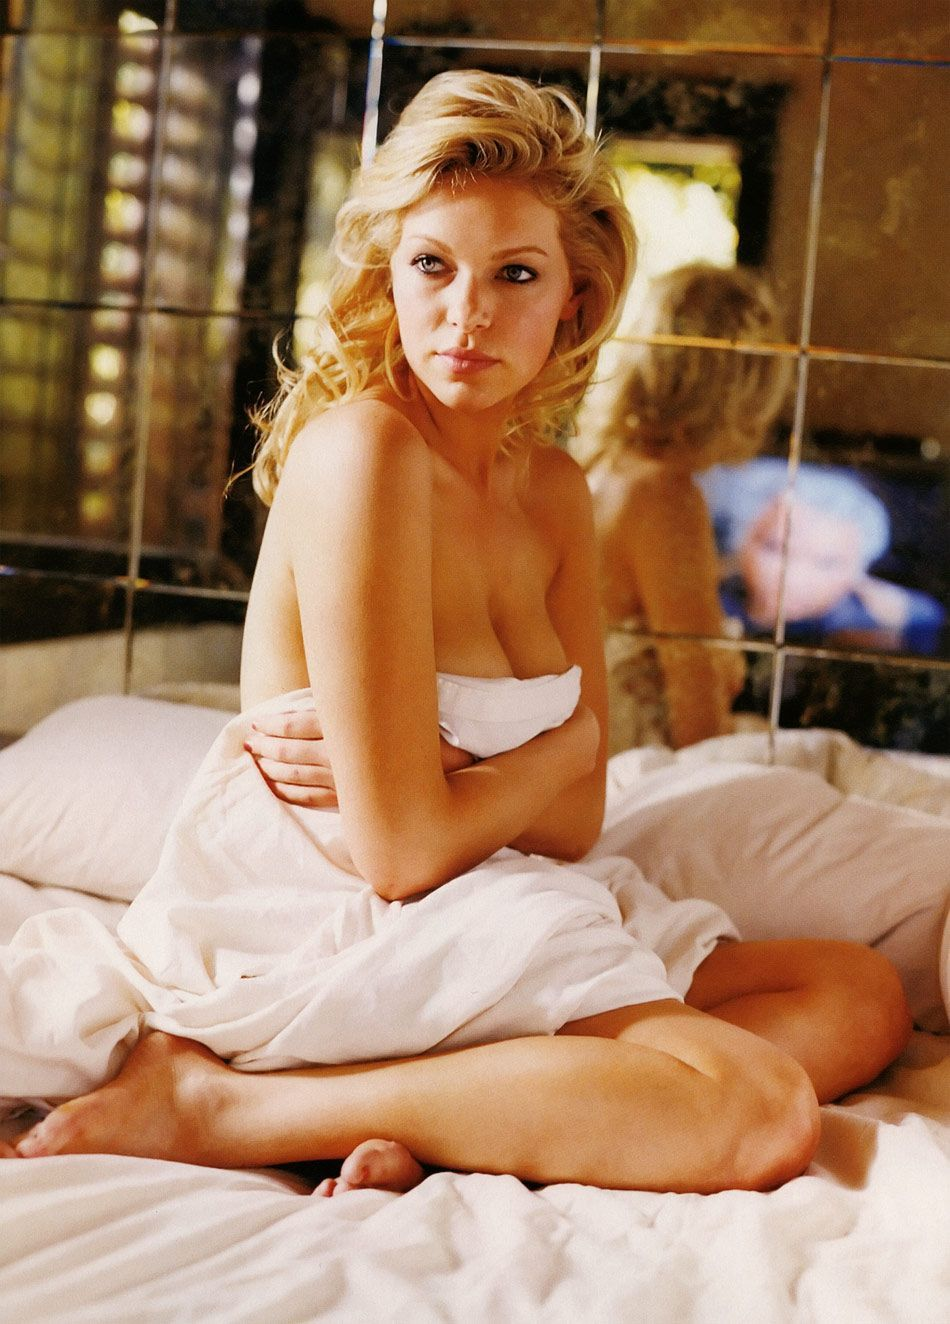 Laura Prepon on Bed